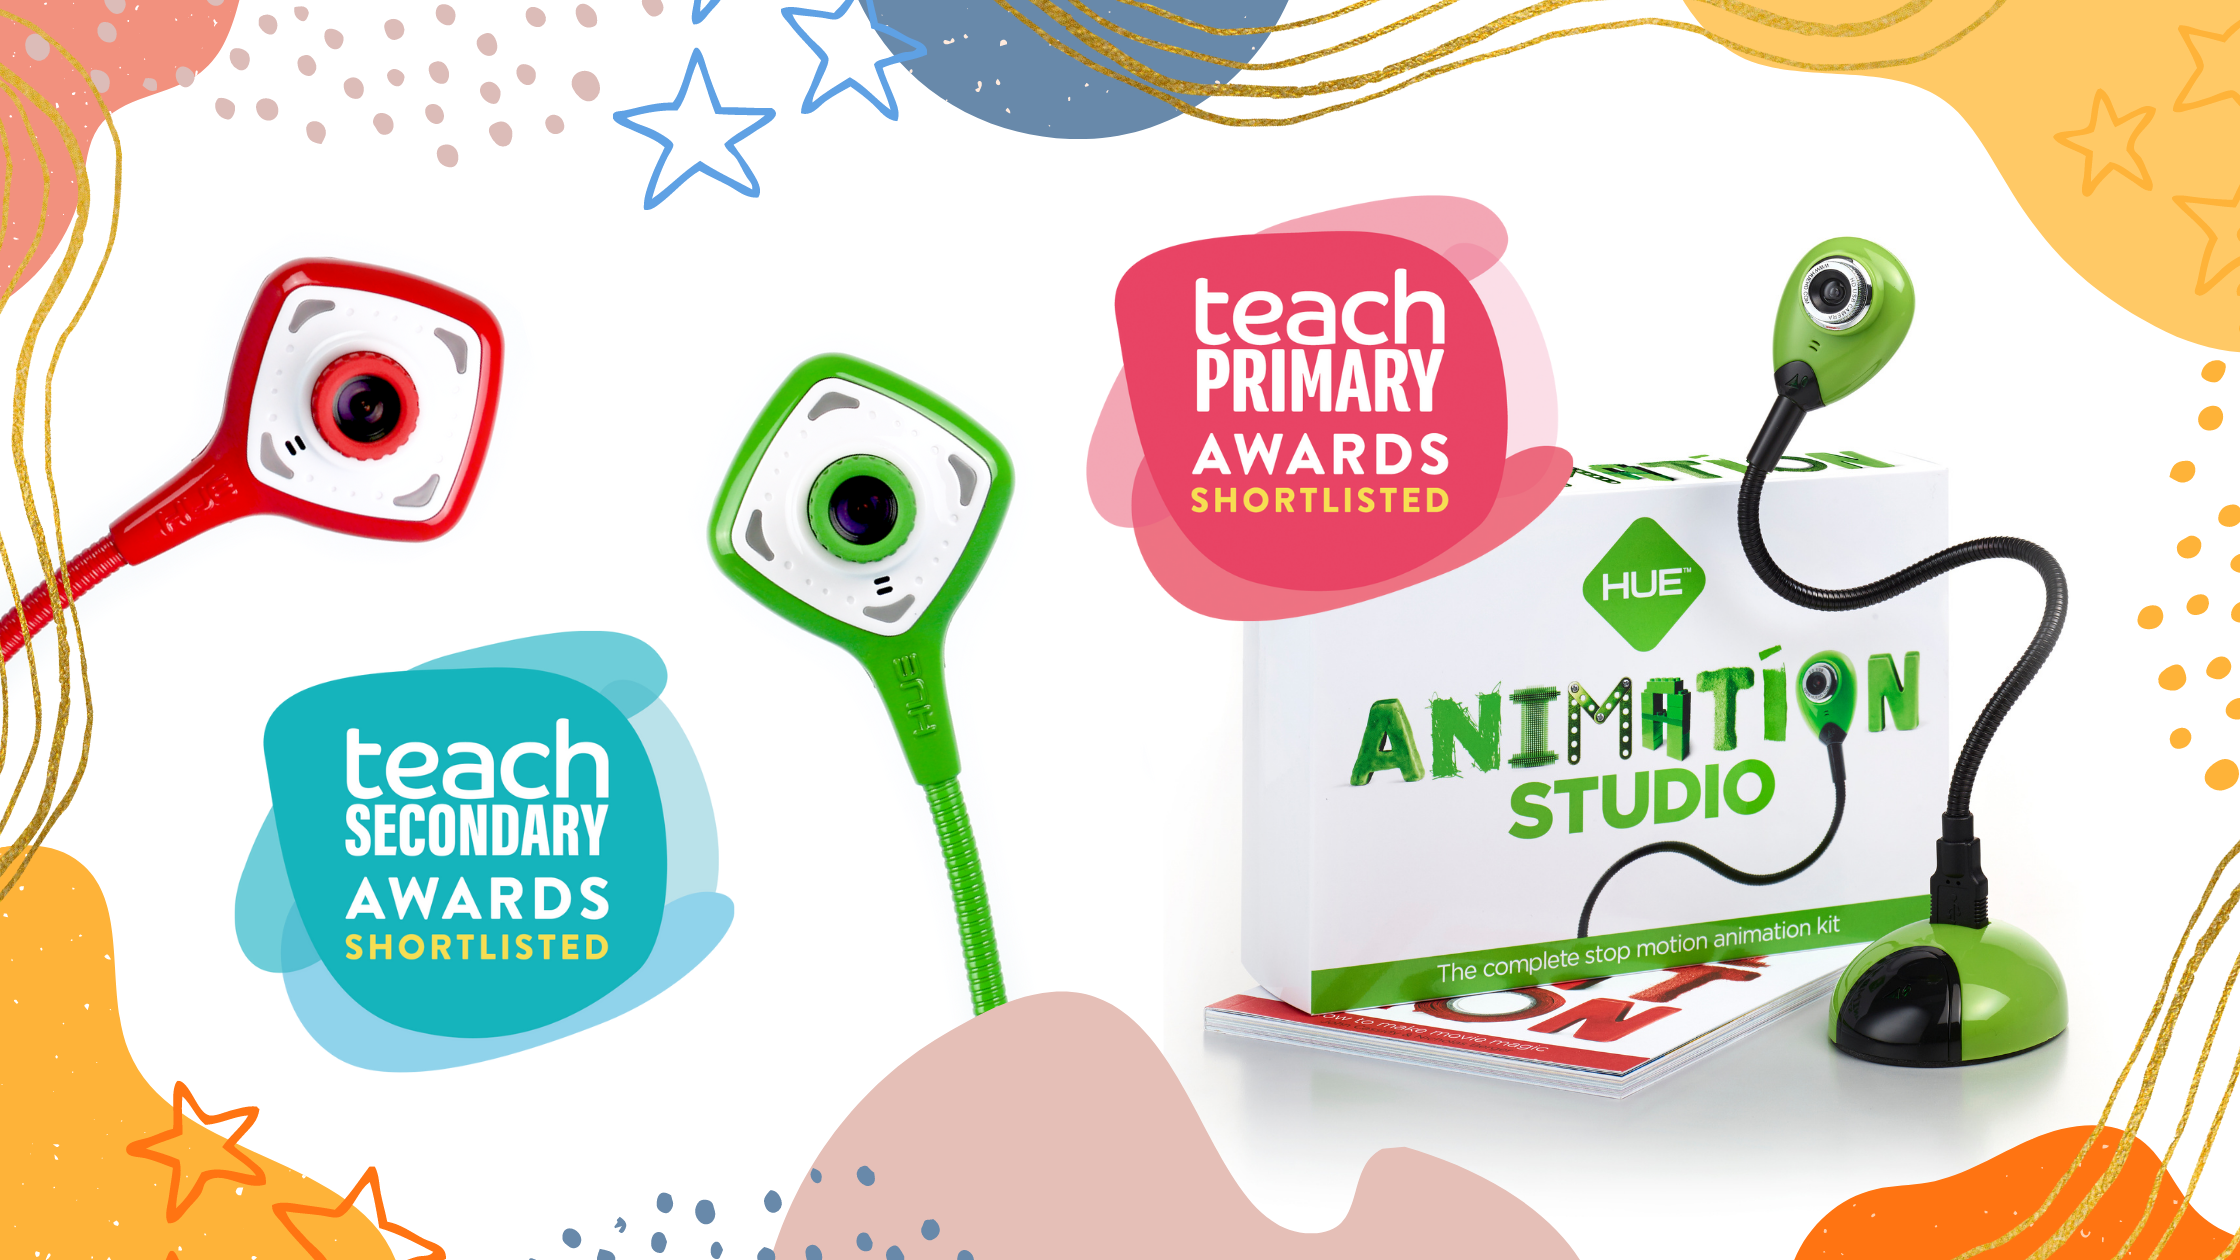 HUE is shortlisted for awards by Teach Primary and Teach Secondary